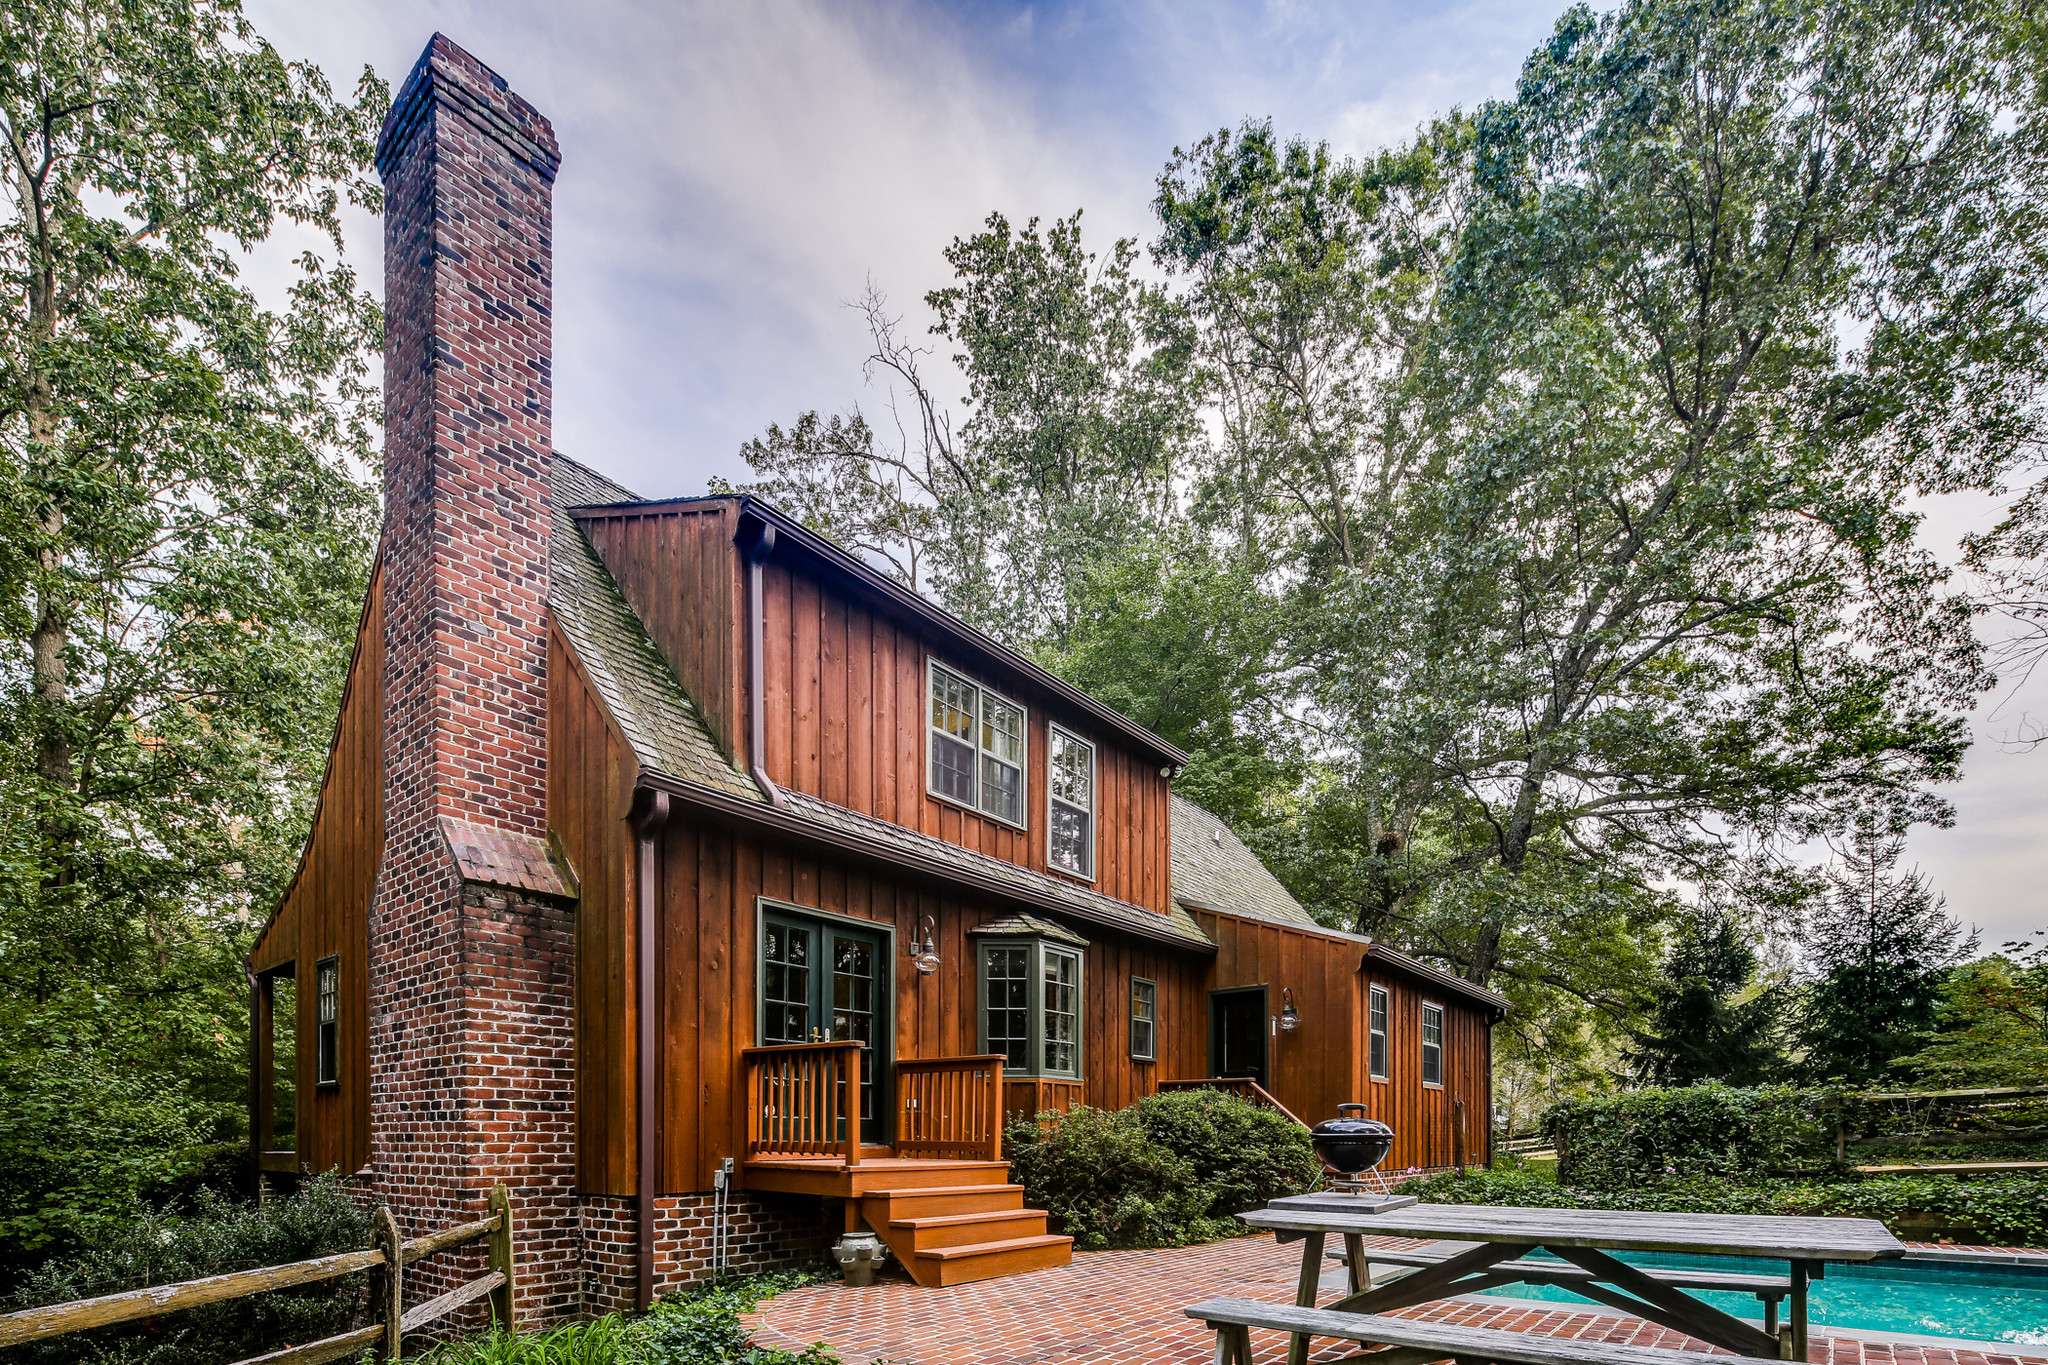 Wood Sided Cape Cod In Sparks For Sale For Nearly 525 000